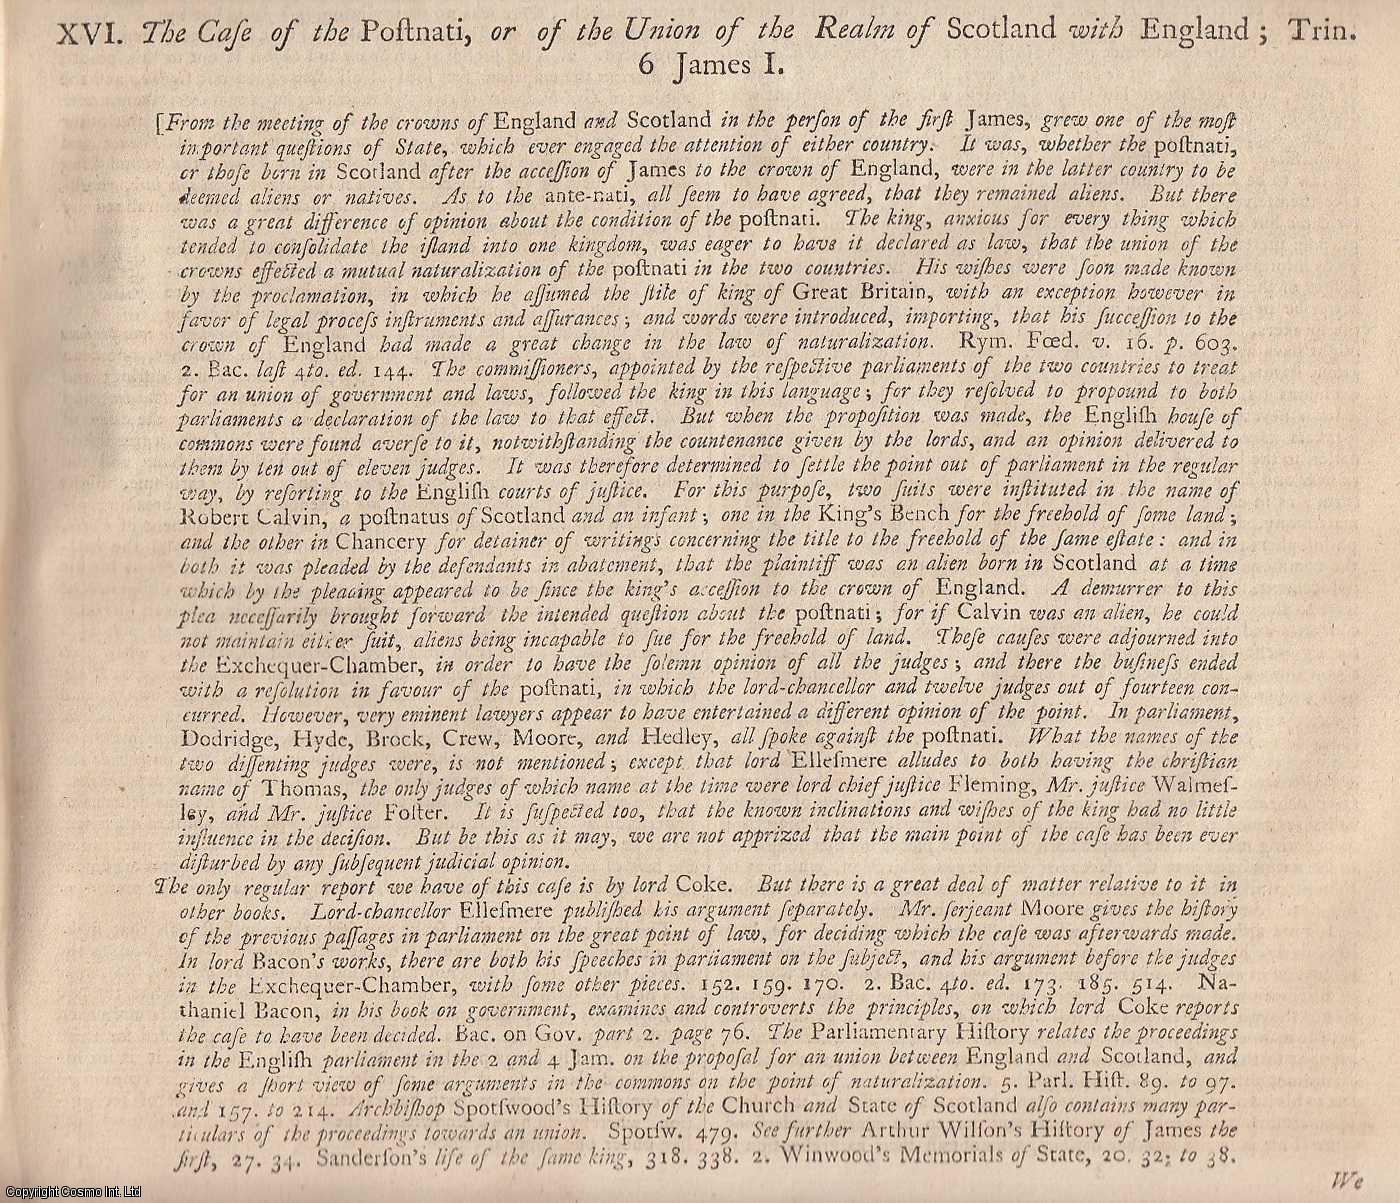 CALVIN'S CASE, JUS SOLI.  The Case of the Postnati, or of the Union of the Realm of Scotland with England. 1608., [Trial].